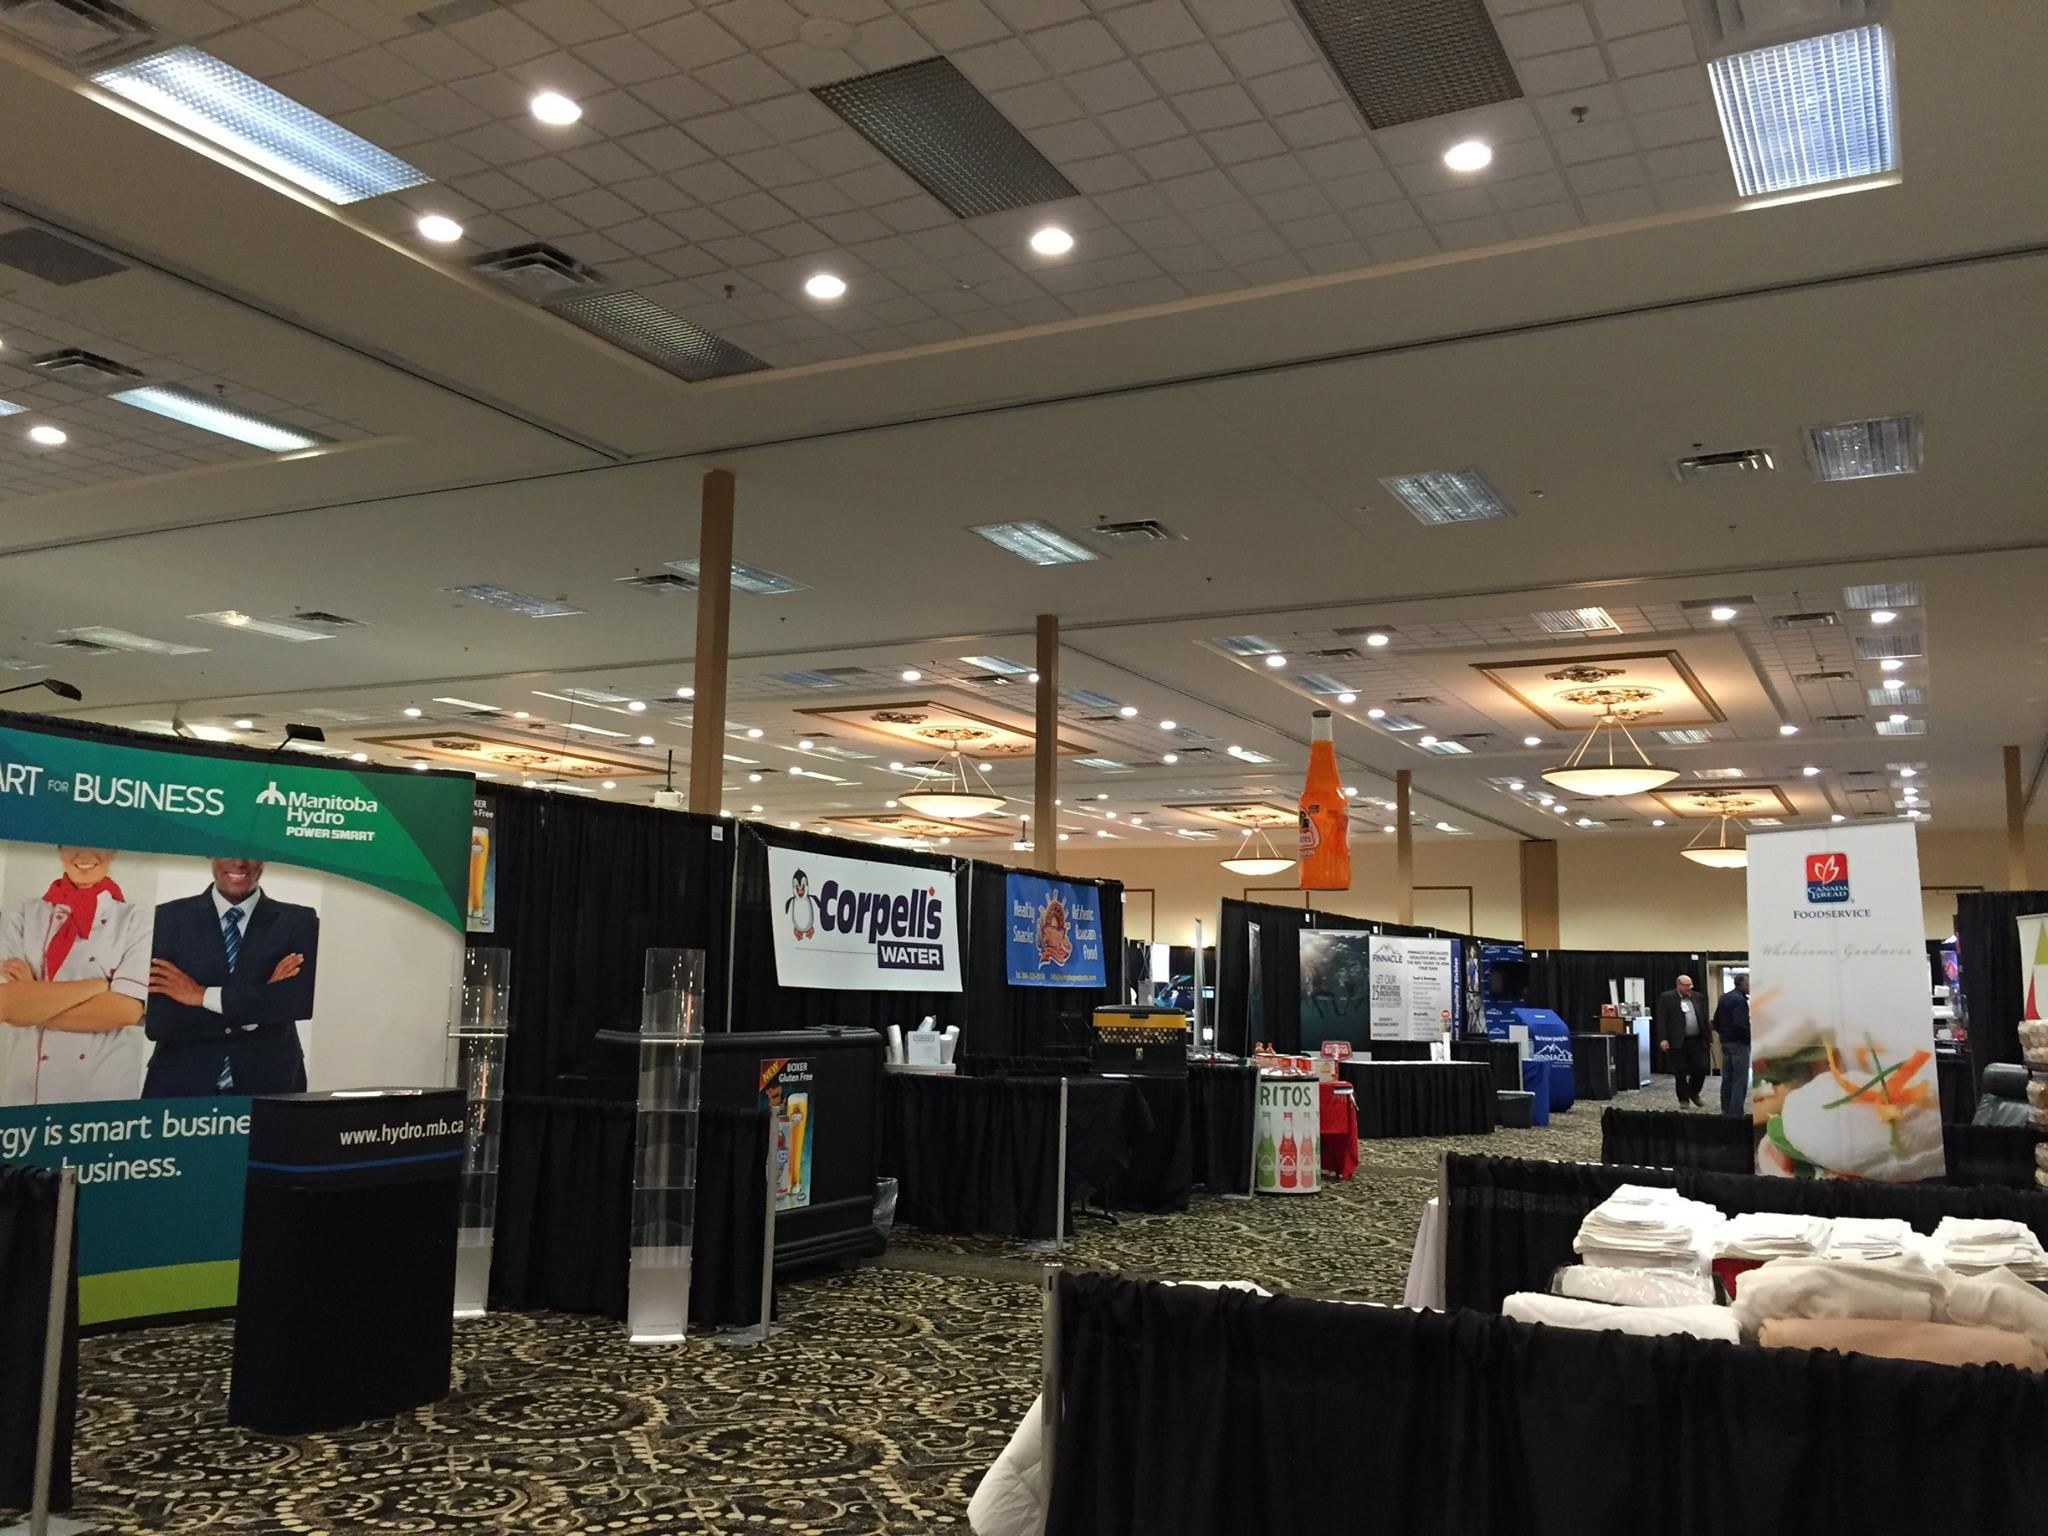 We Hope Everyone Had A Great Time At The Manitoba Hotel Association Trade Show Here